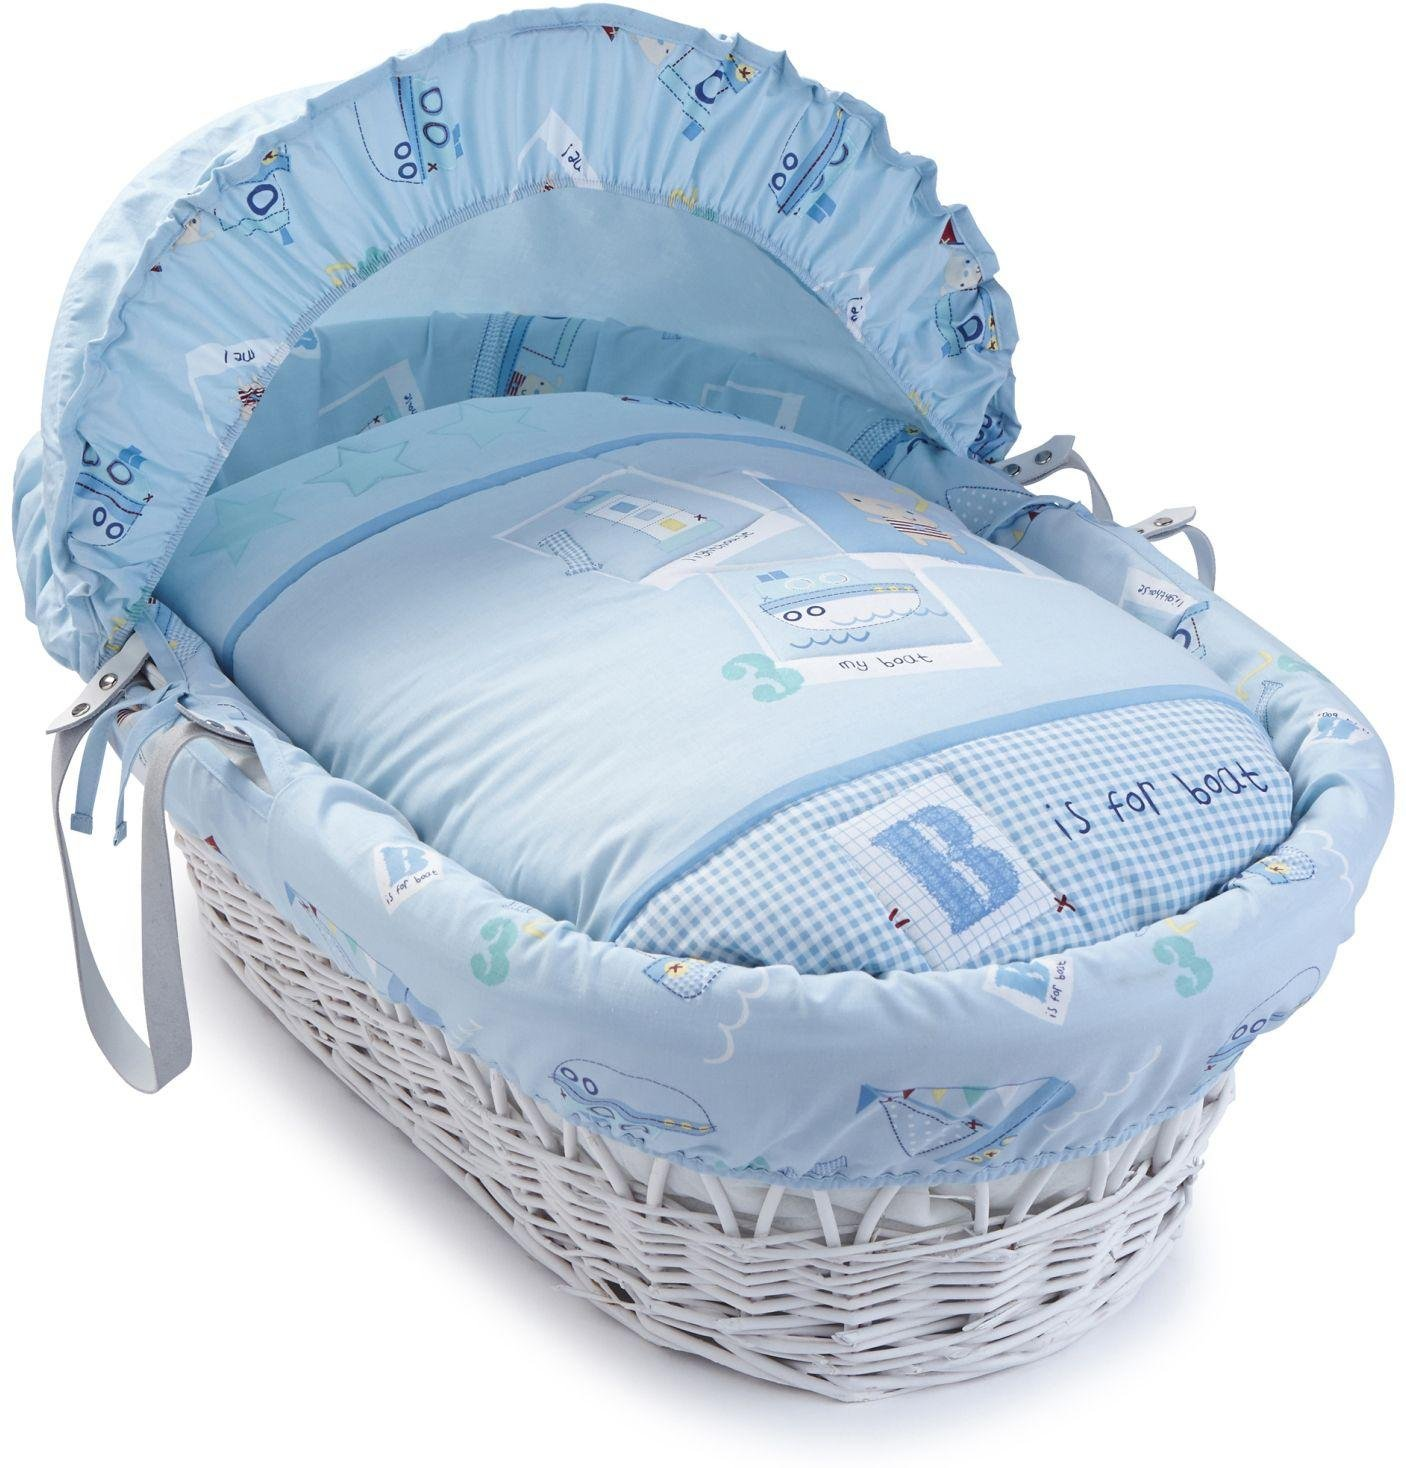 Image of Clair de Lune Ahoy White Wicker Moses Basket.